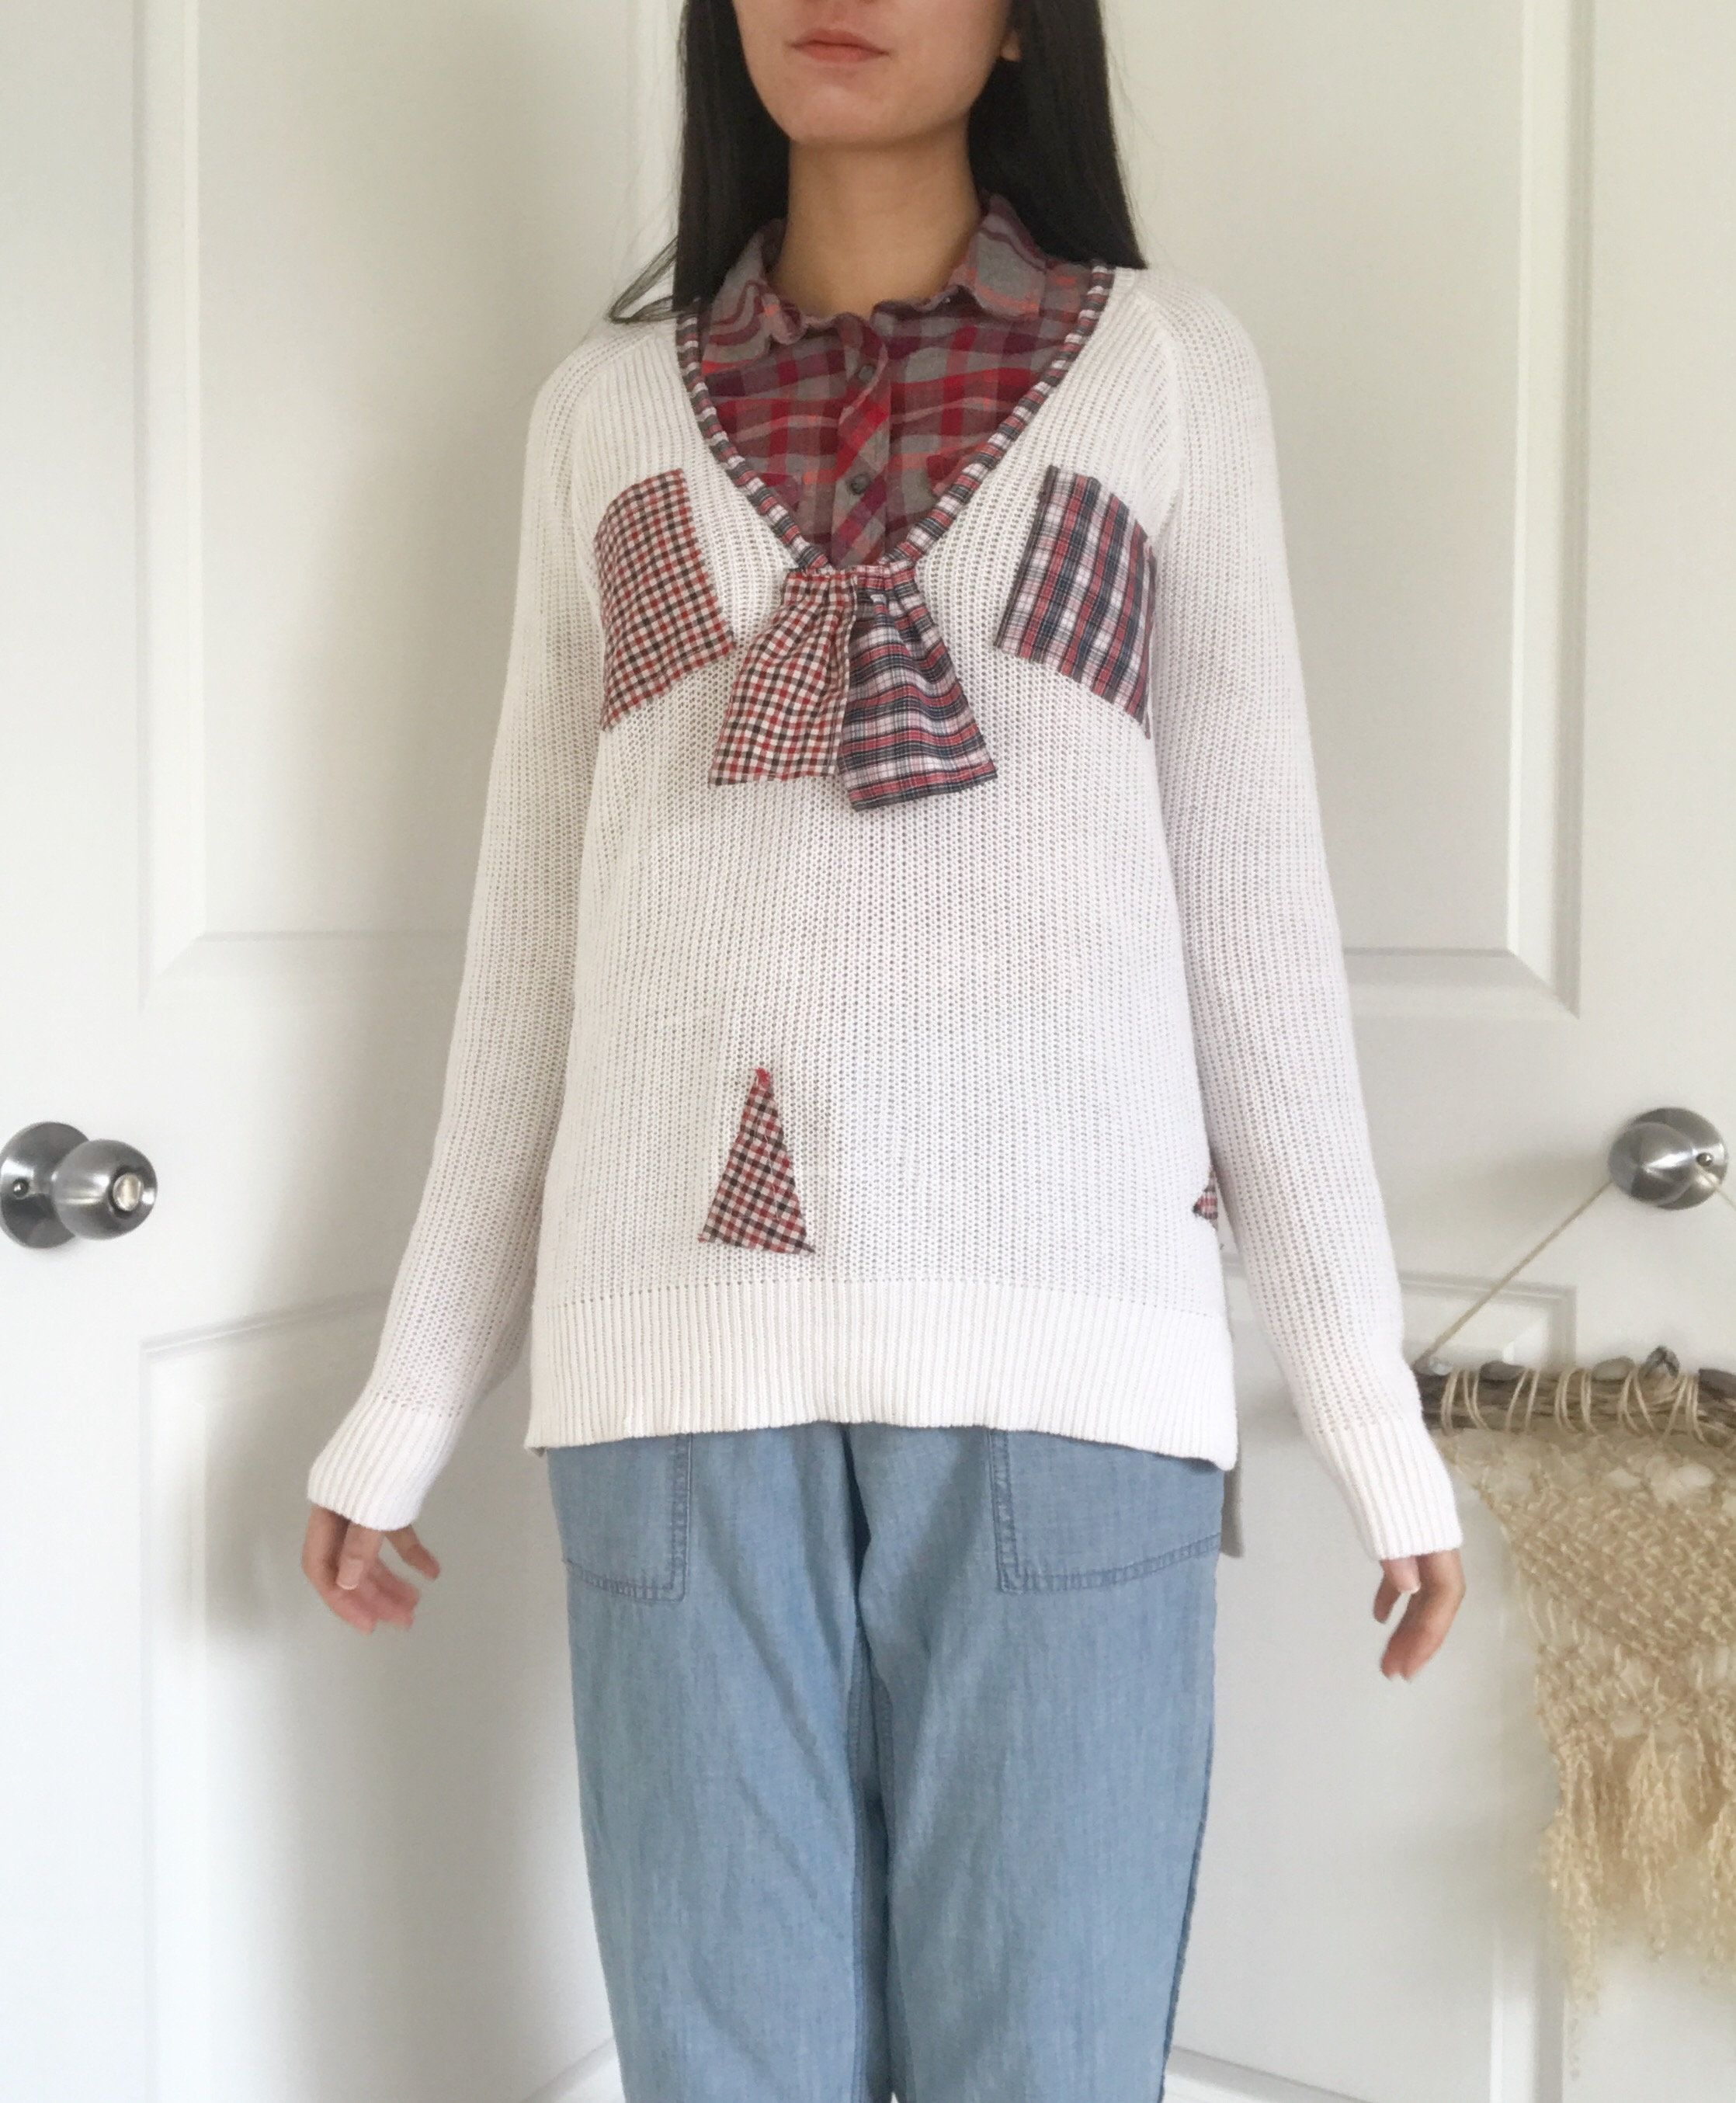 Repaired Sweater With Patch Pockets, VNeck Upcycled